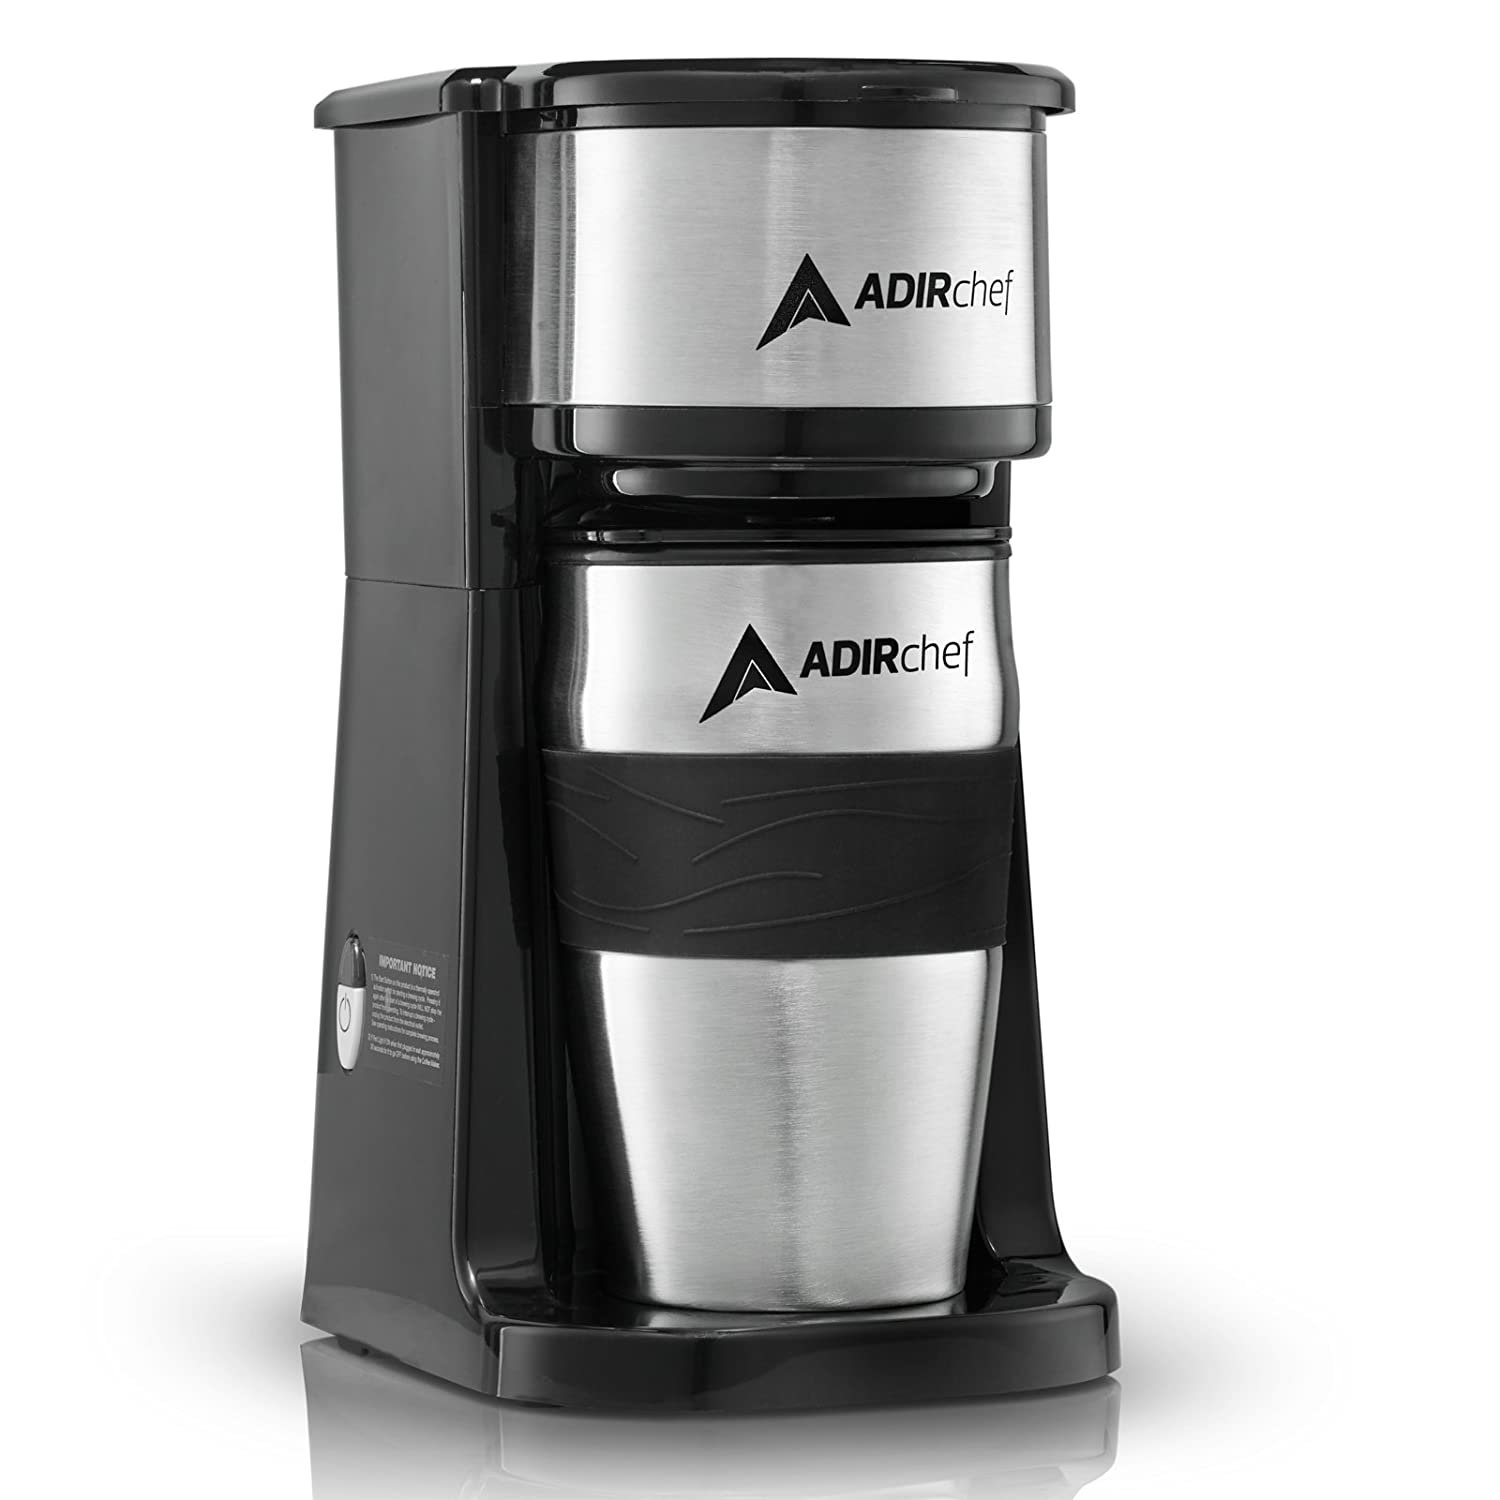 Best Single Cup Coffee Maker Reviews 2019: Top 5+ Recommended 3 #cookymom